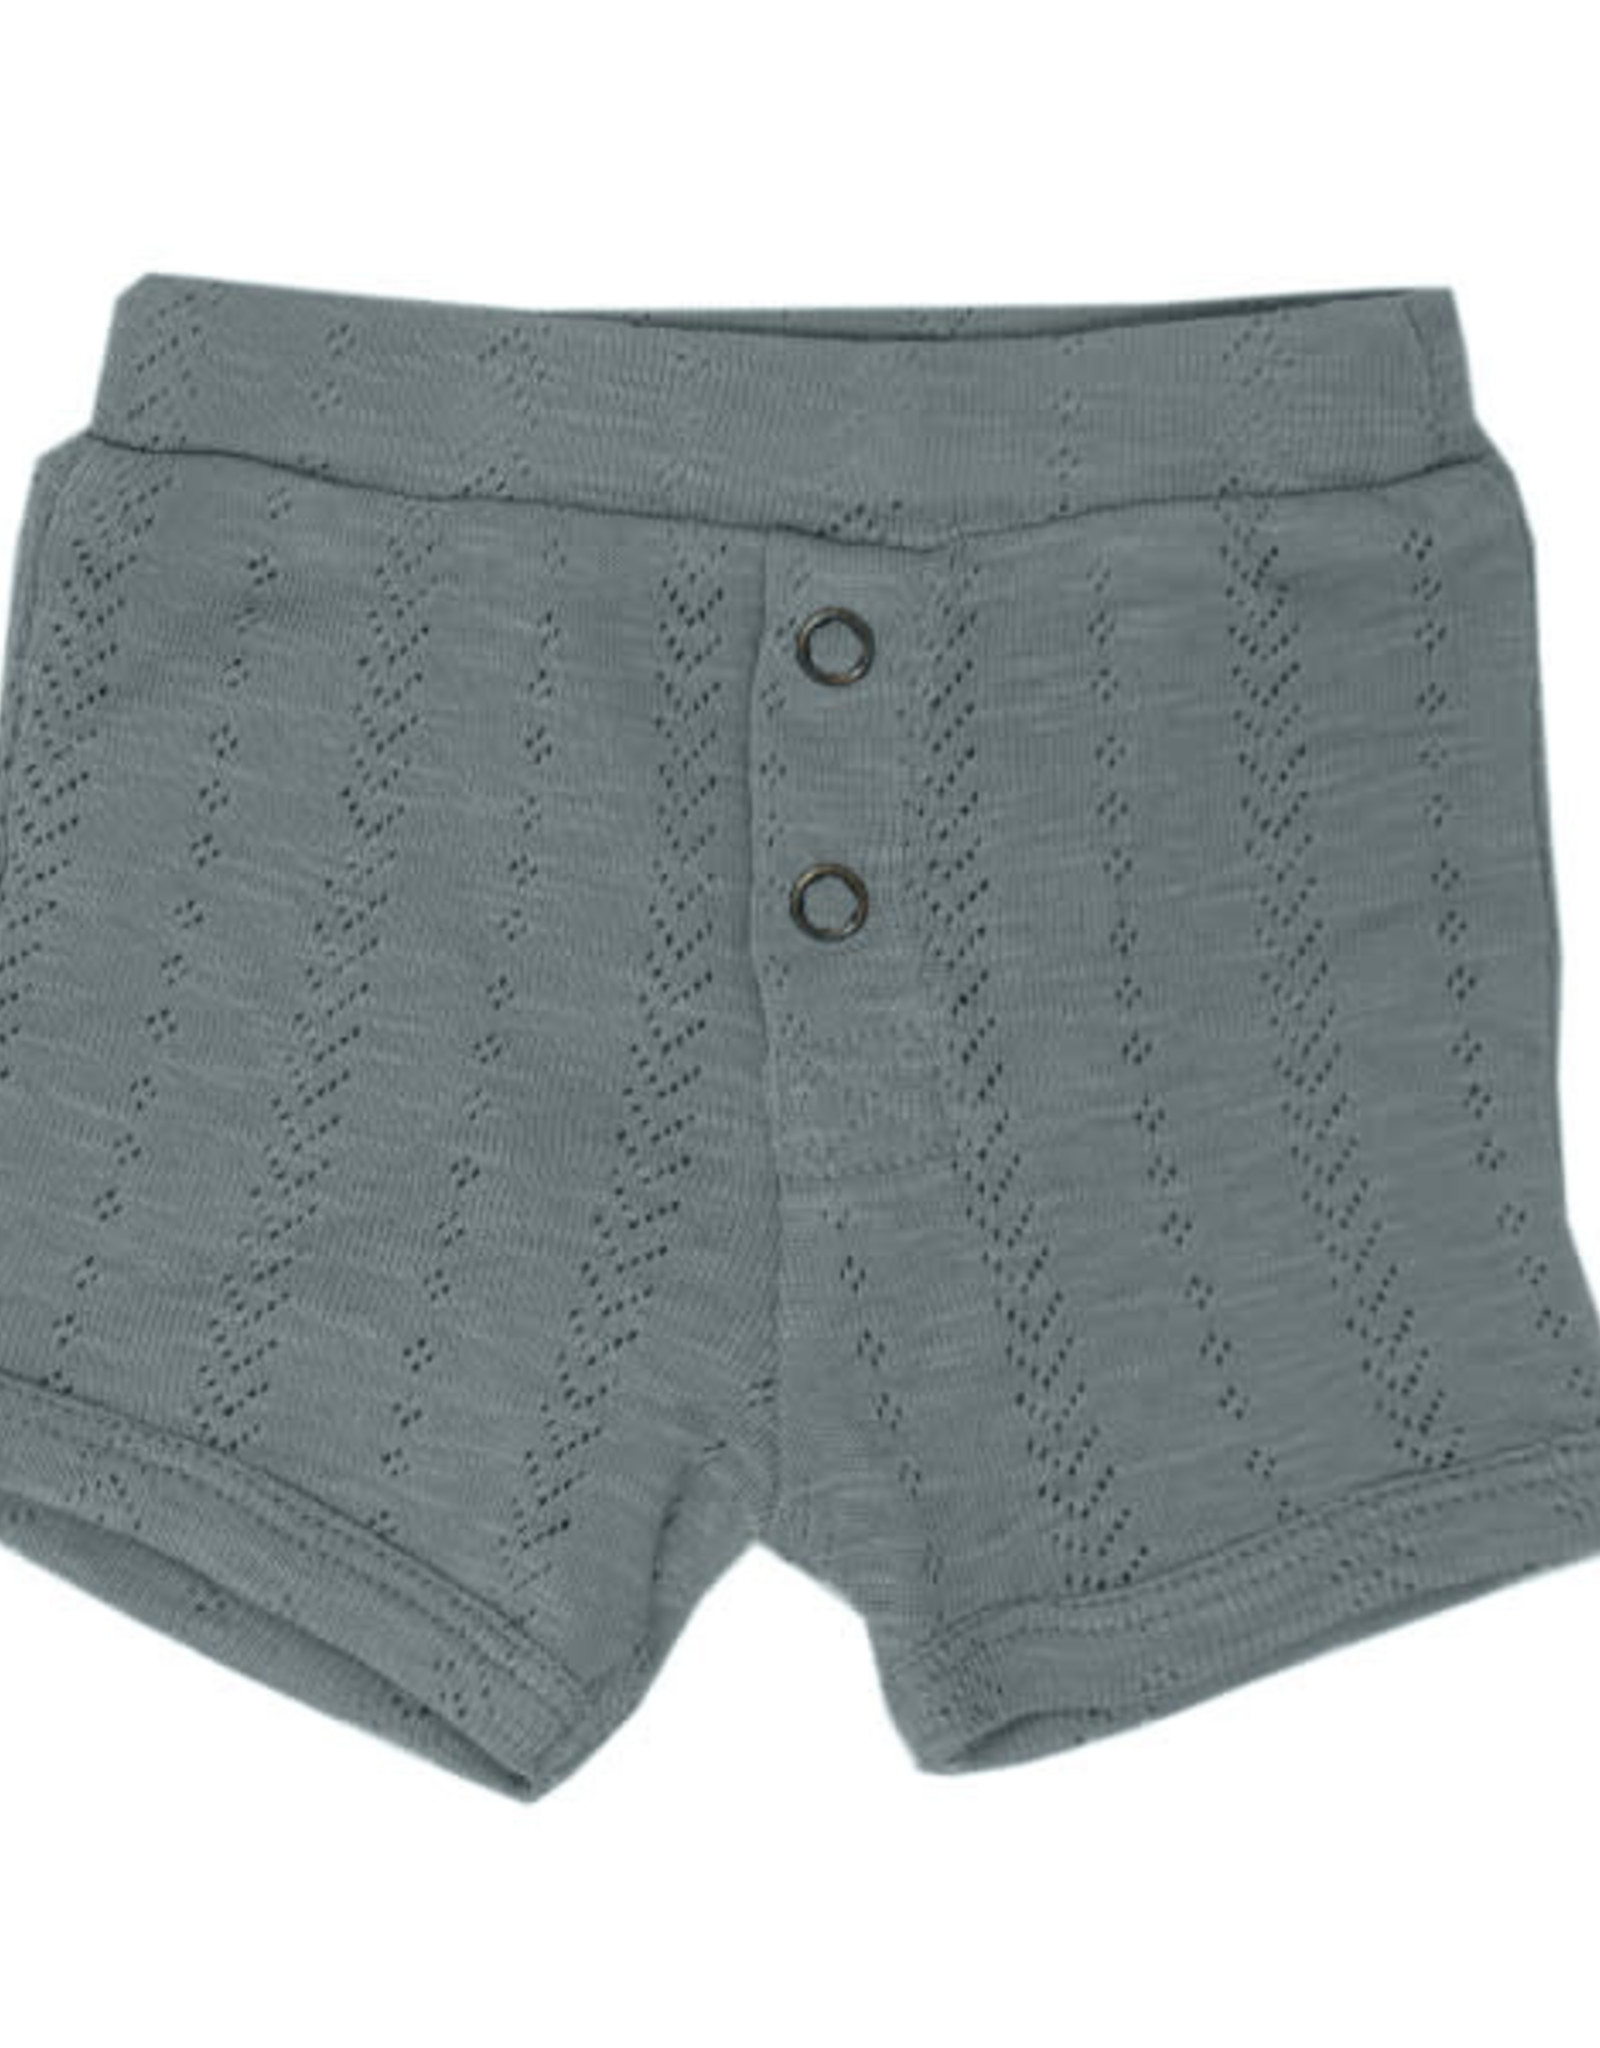 L'oved Baby Pointelle Shorts Moonstone